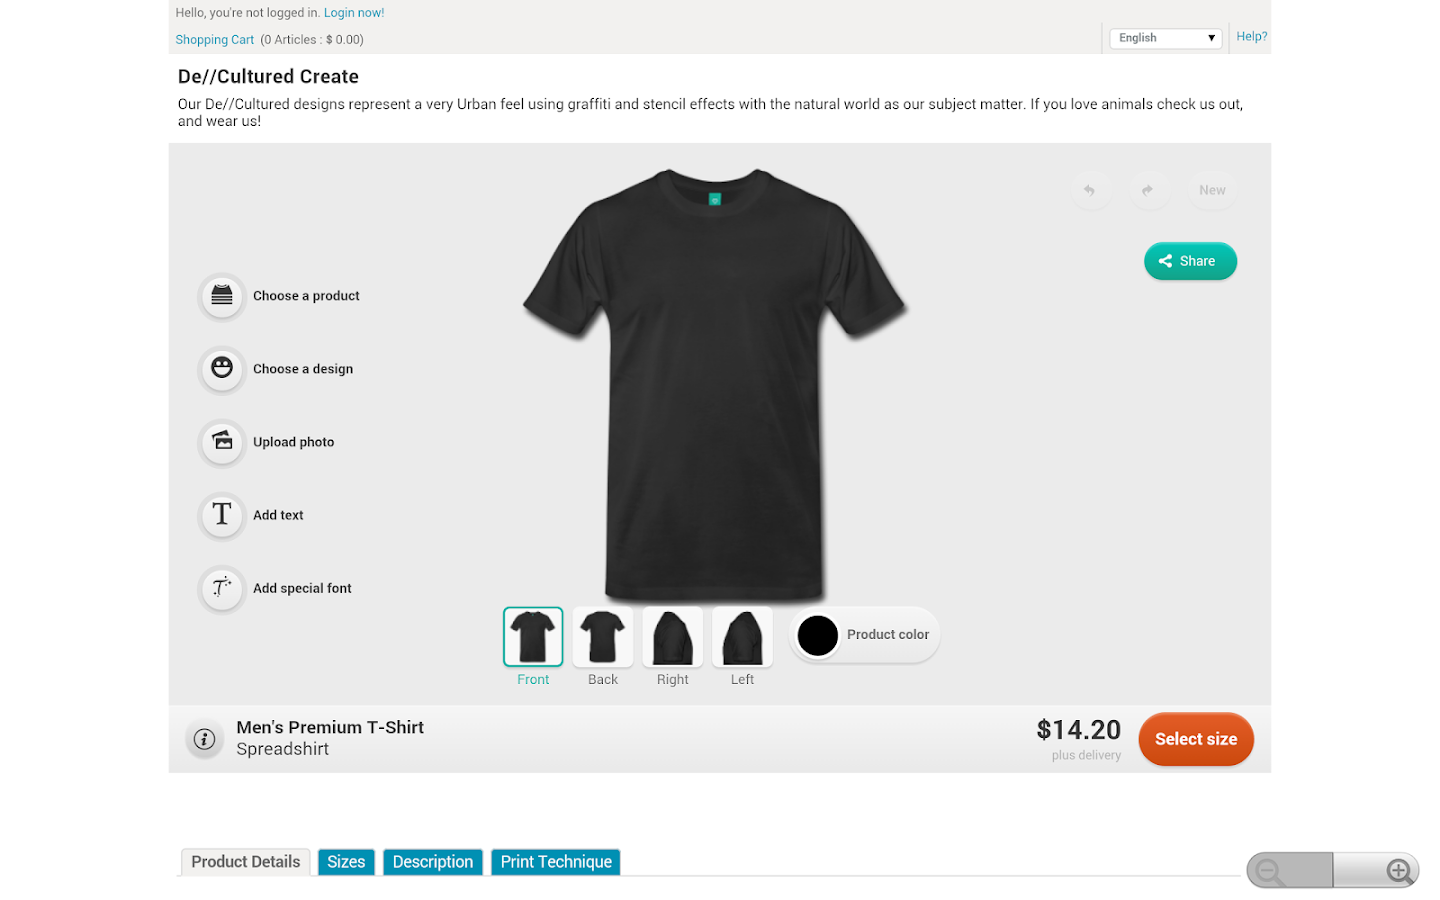 De cultured create t shirt android apps on google play Apps to design t shirts